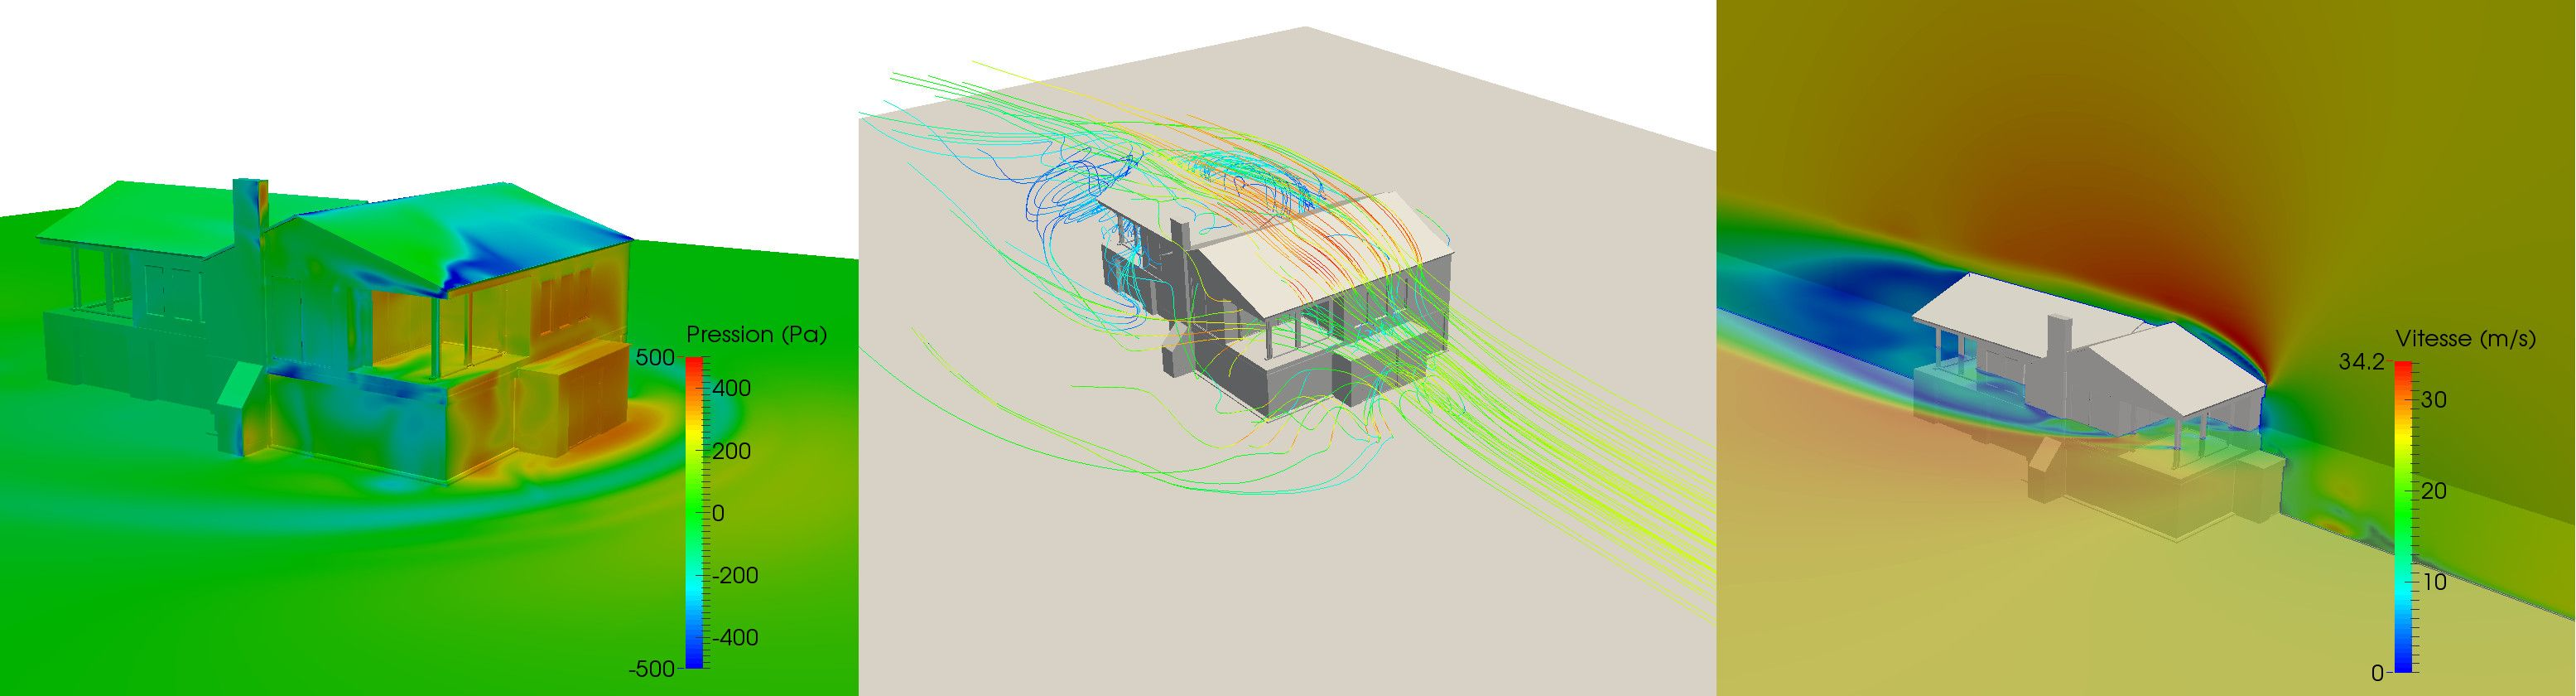 CFD simulation of the wind around a building  From left to